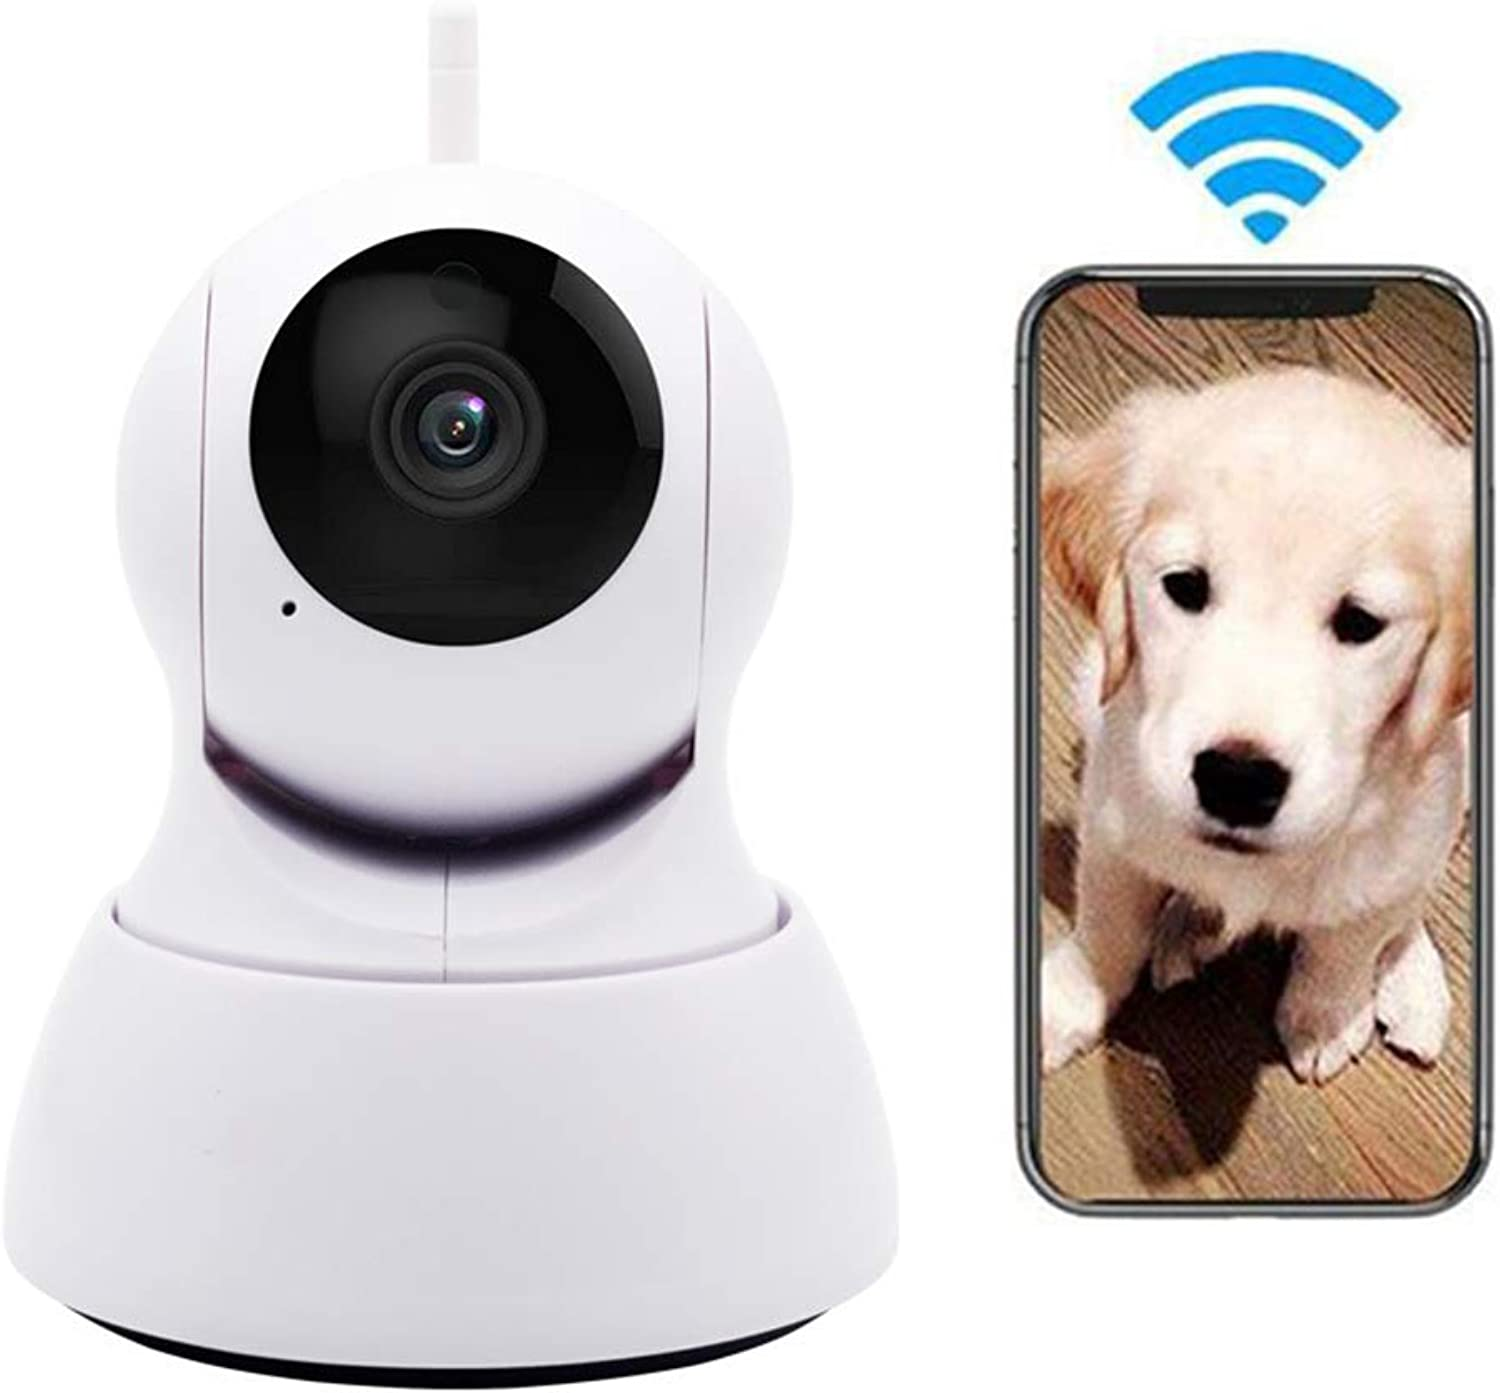 Pet Camera, WiFi Dog Monitor, Surveilance, 720P HD IP Camera, Indoor for Baby Pet with Motion Detection Night Vision TwoWay Audio Ptz redation Monitoring